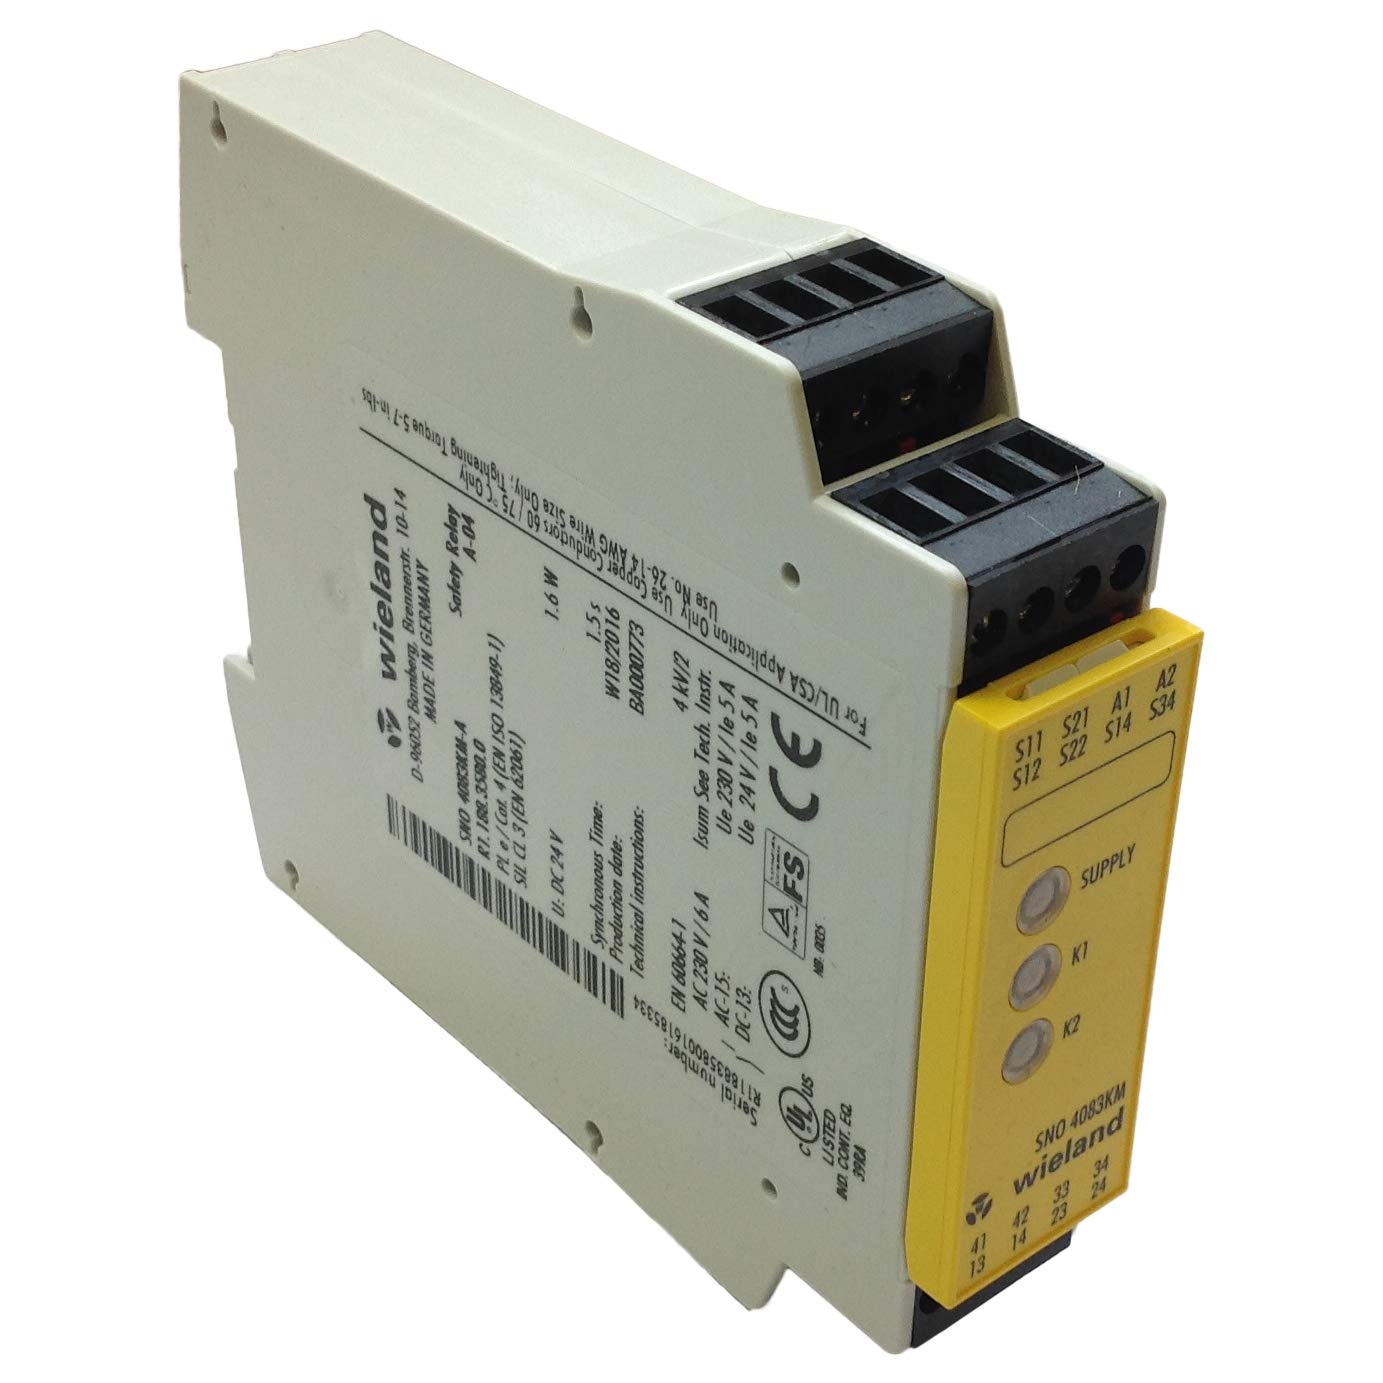 R1.188.3580.0 | SNO 4083KM-A DC 24V; 1.5s | WIELAND SAFETY RELAY, UNIVERSAL SAFETY RELAY, 3NO & 1NC CONTACTS